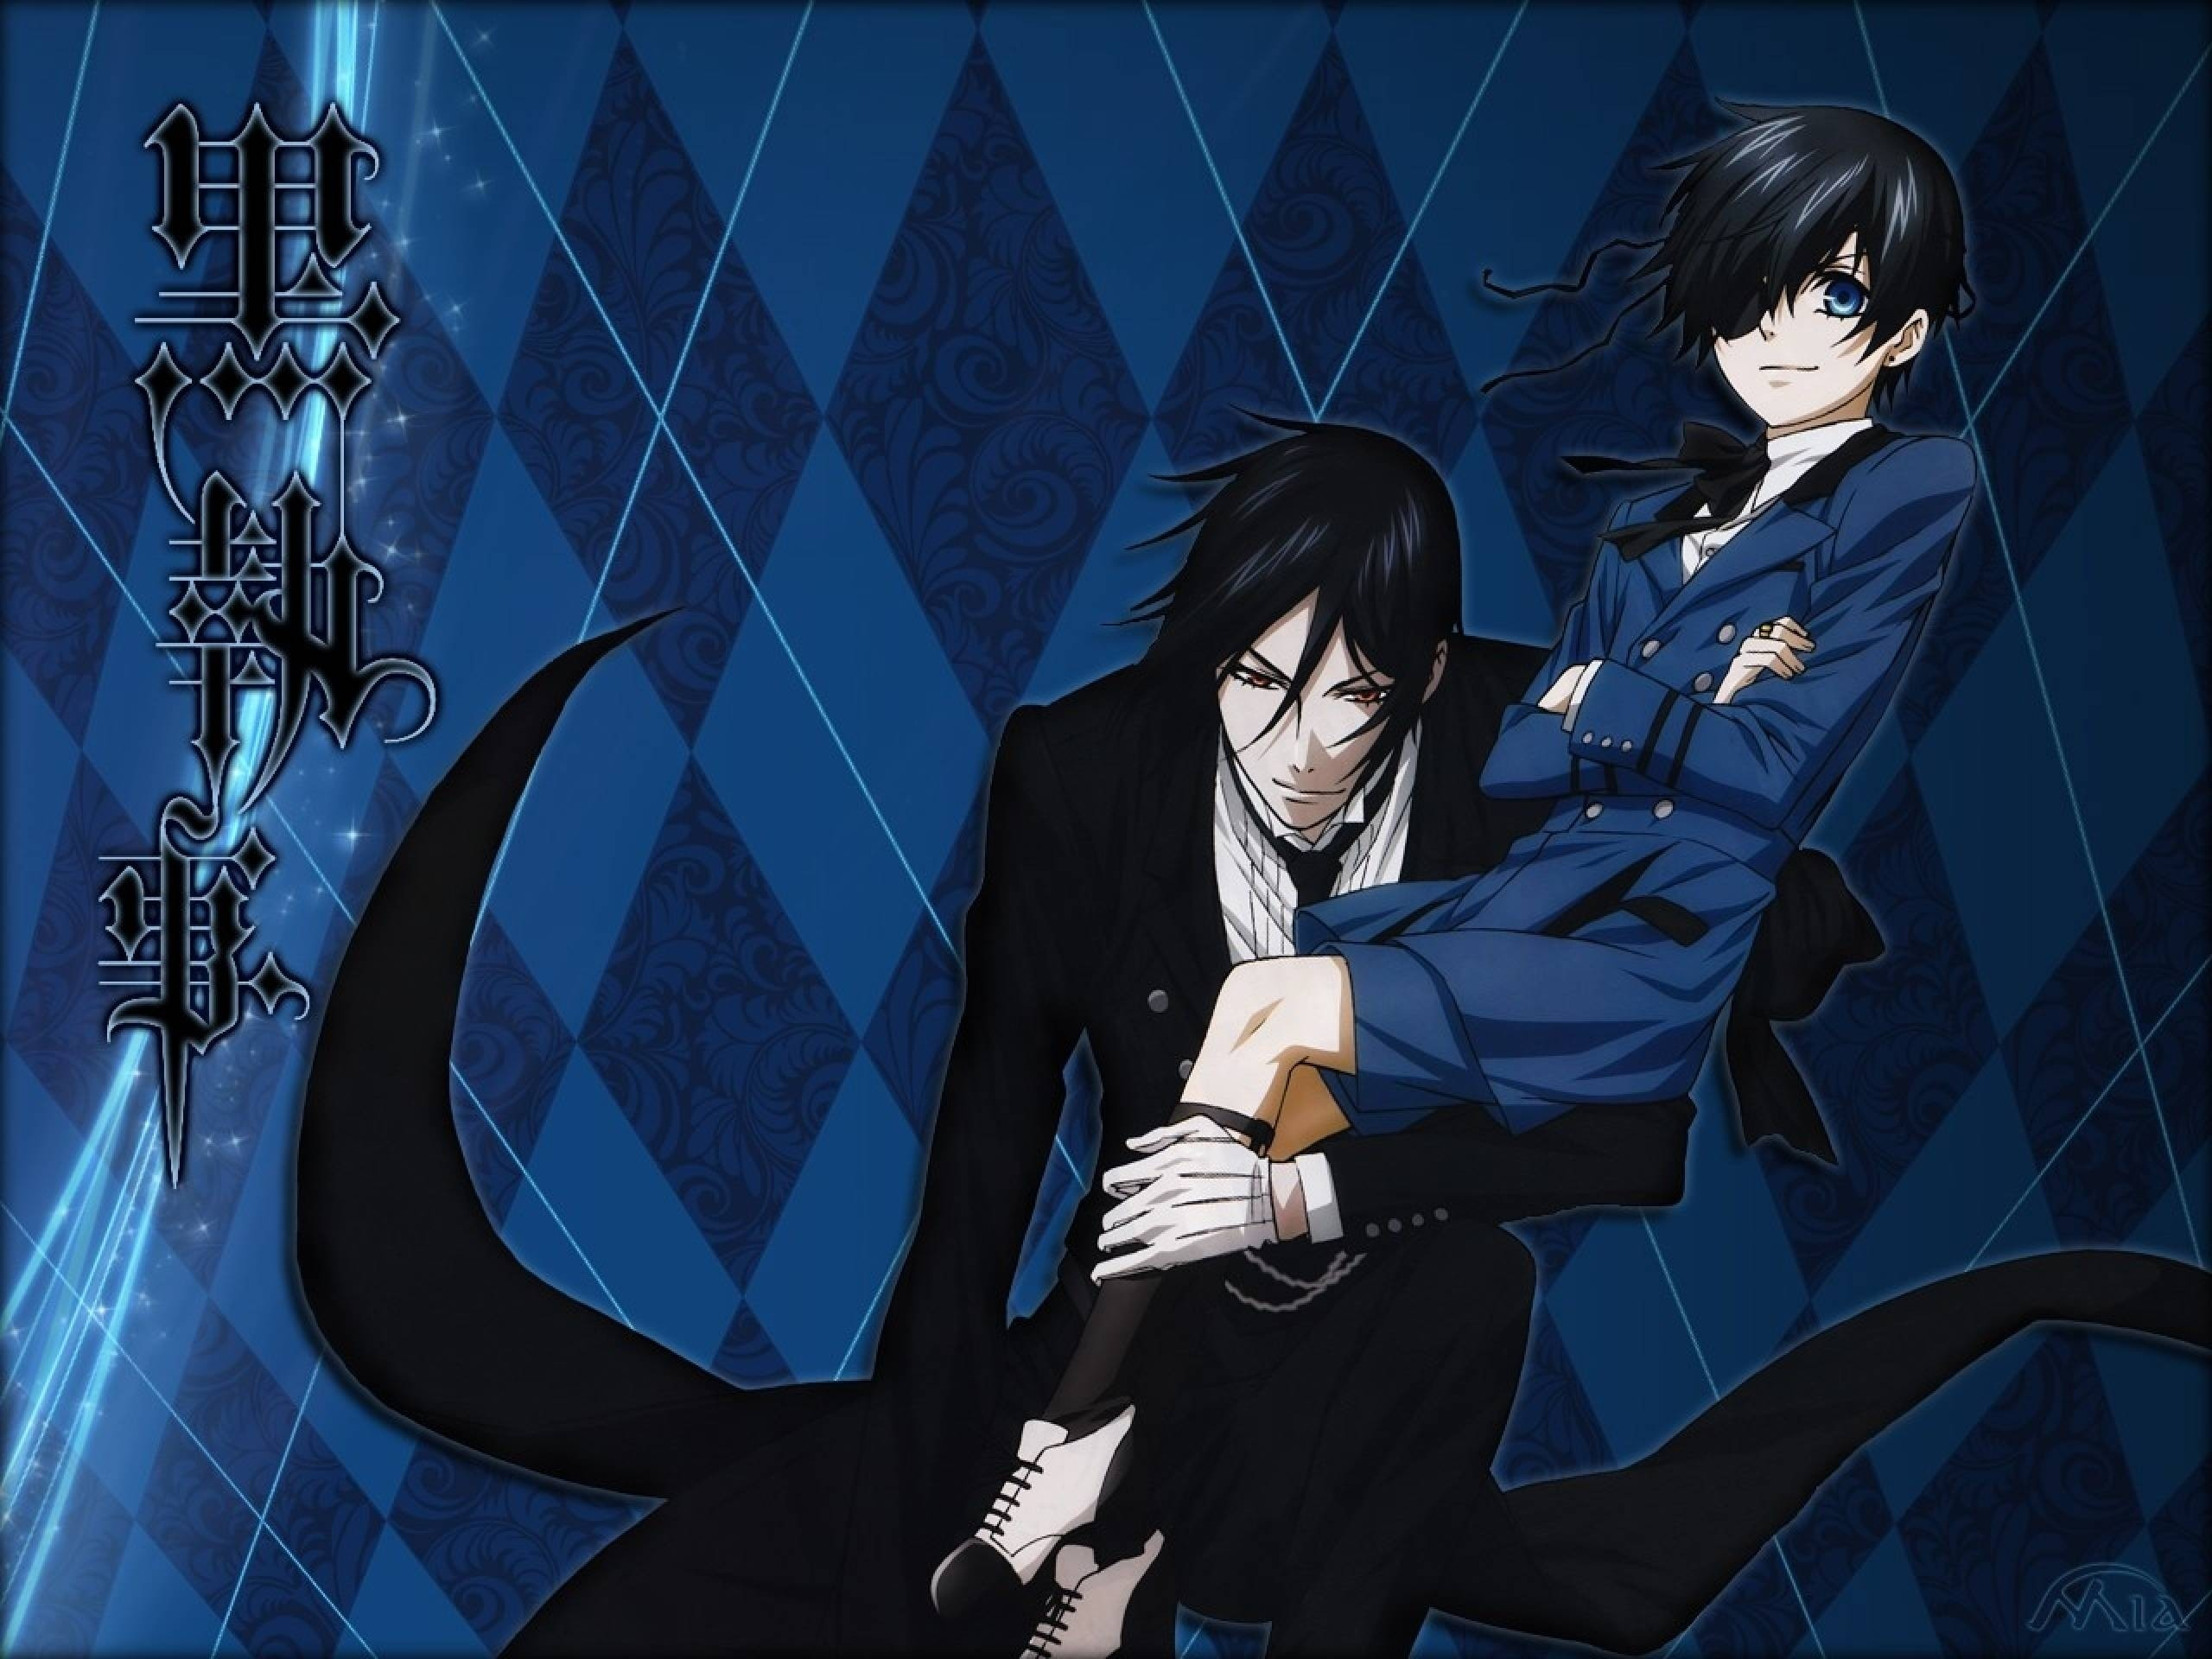 Res: 2560x1920, Title : black butler wallpapers – wallpaper cave. Dimension : 2560 x 1920.  File Type : JPG/JPEG